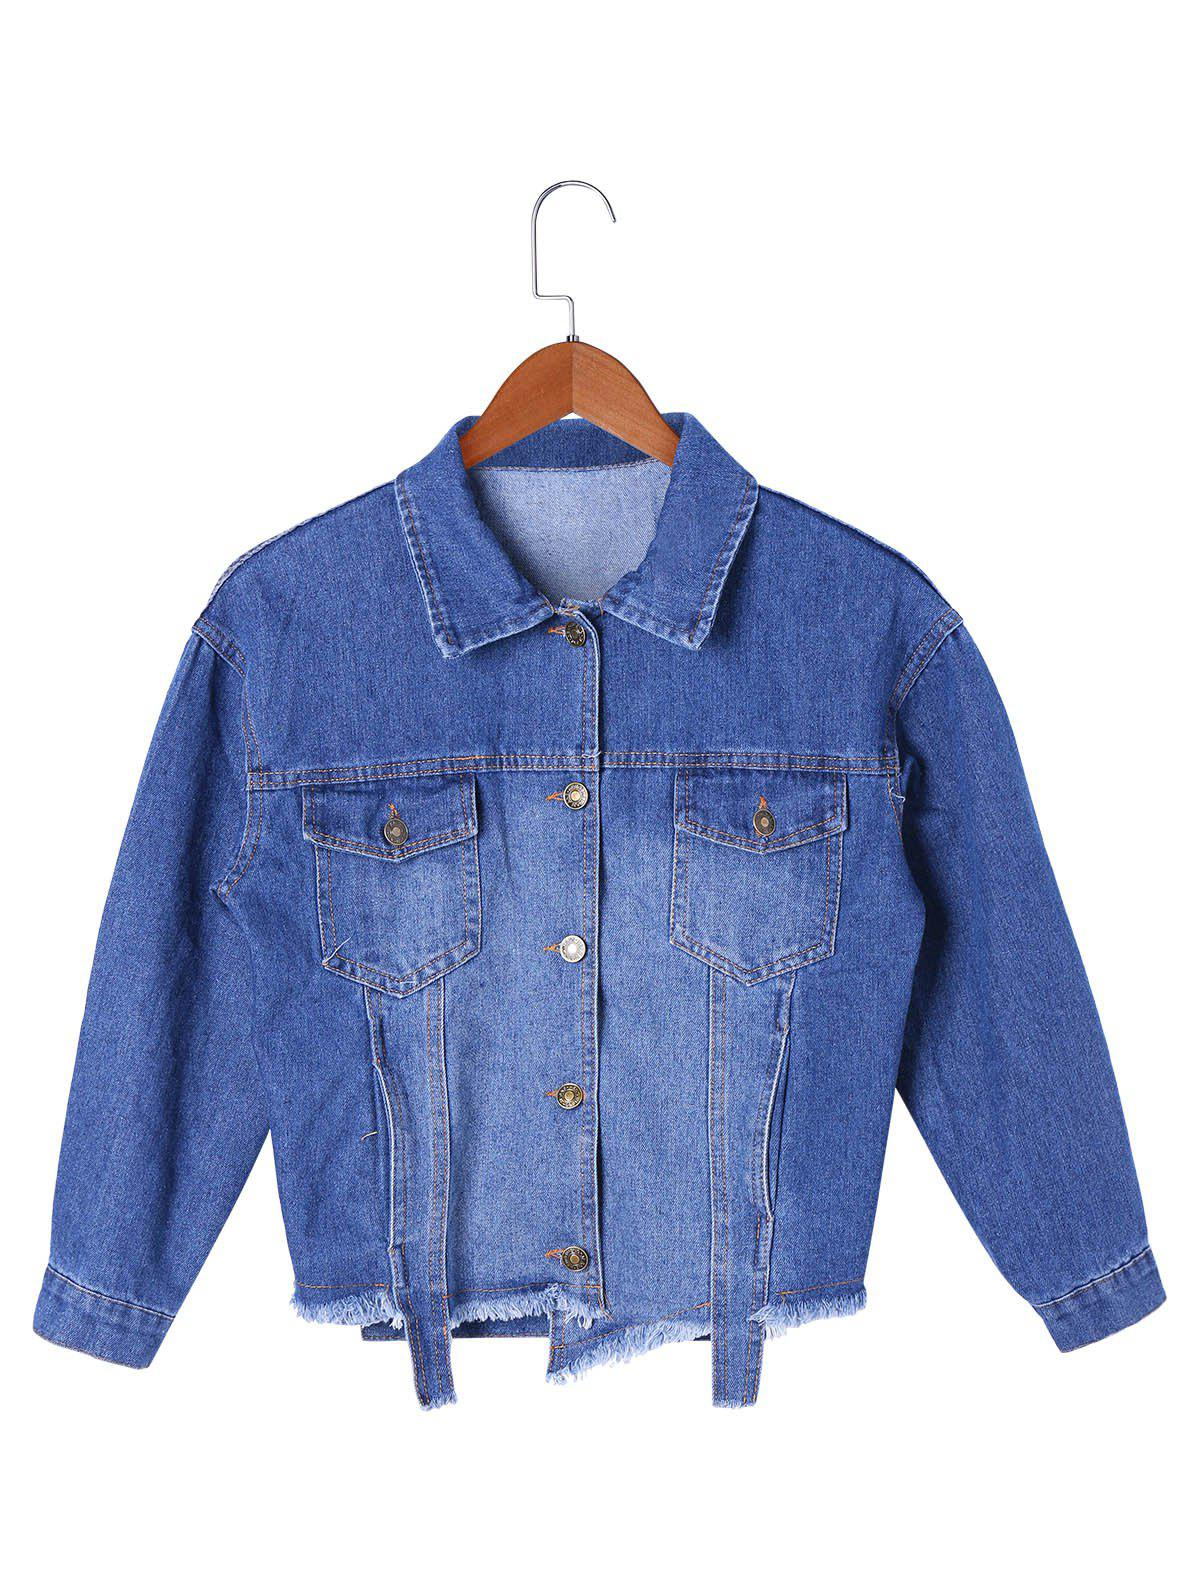 Frayed Hem Denim Short Jacket - DENIM BLUE L